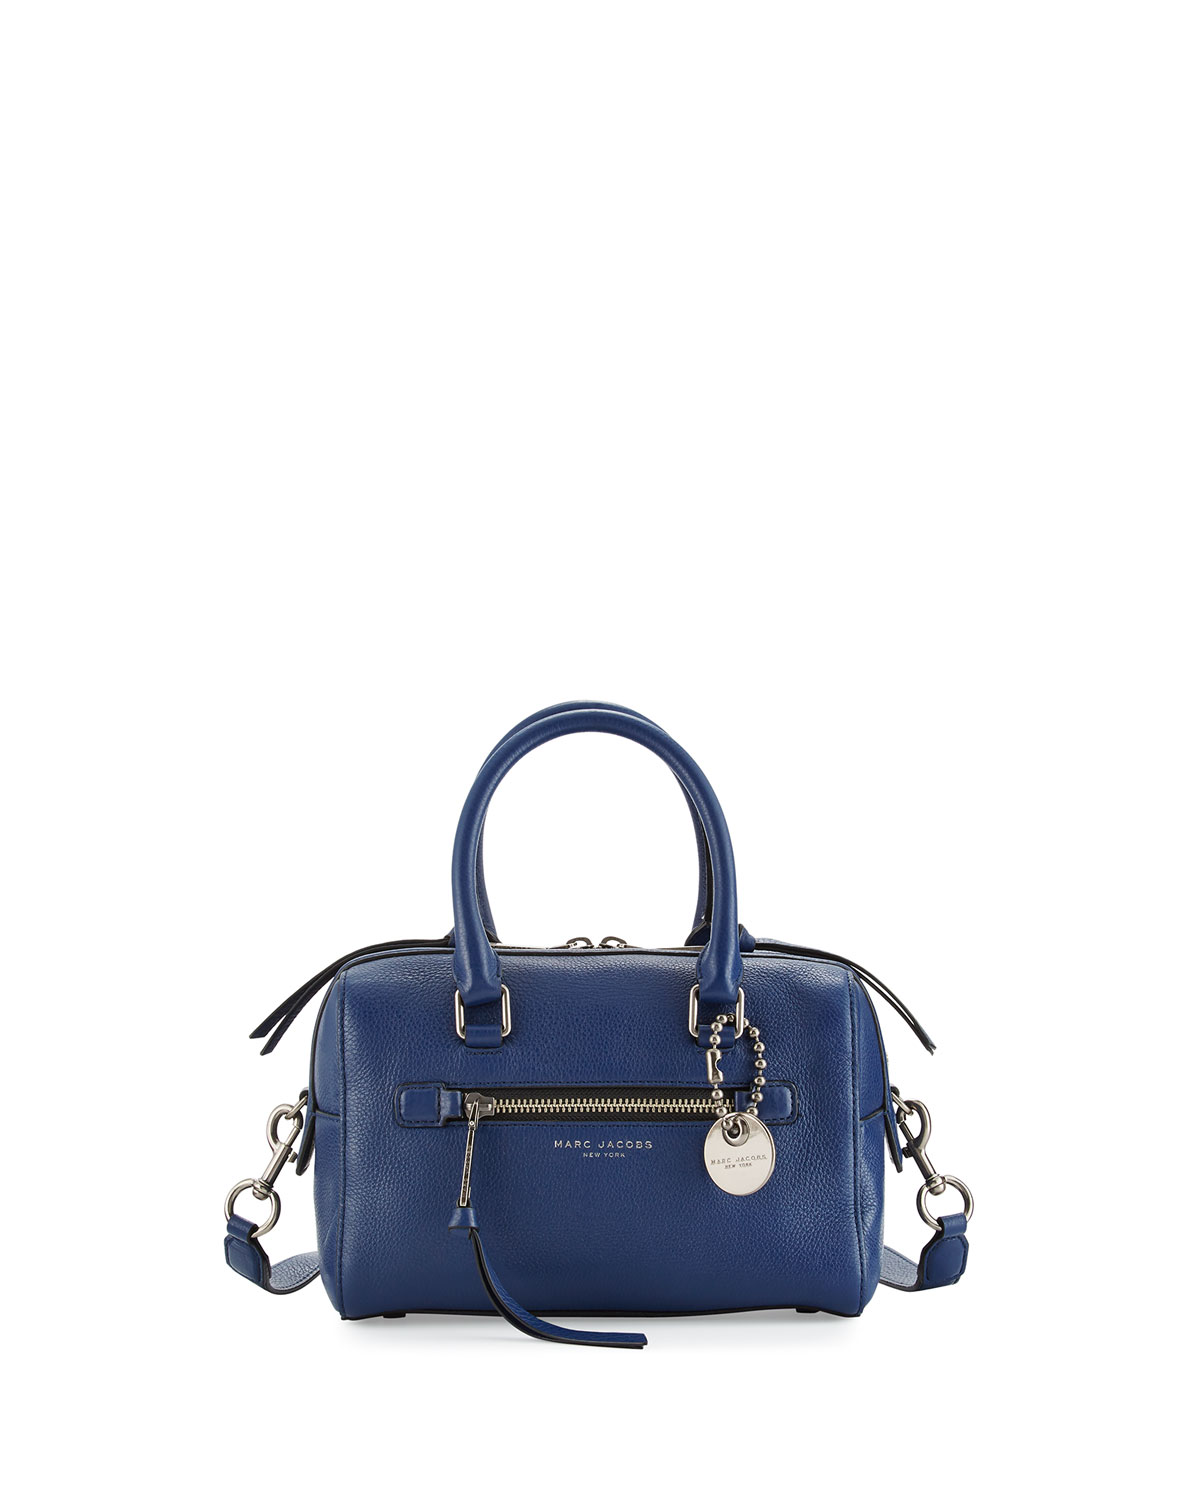 Marc Jacobs Recruit Small Leather Bauletto Bag, Dark Blue   Neiman ... ddbf6d30e0